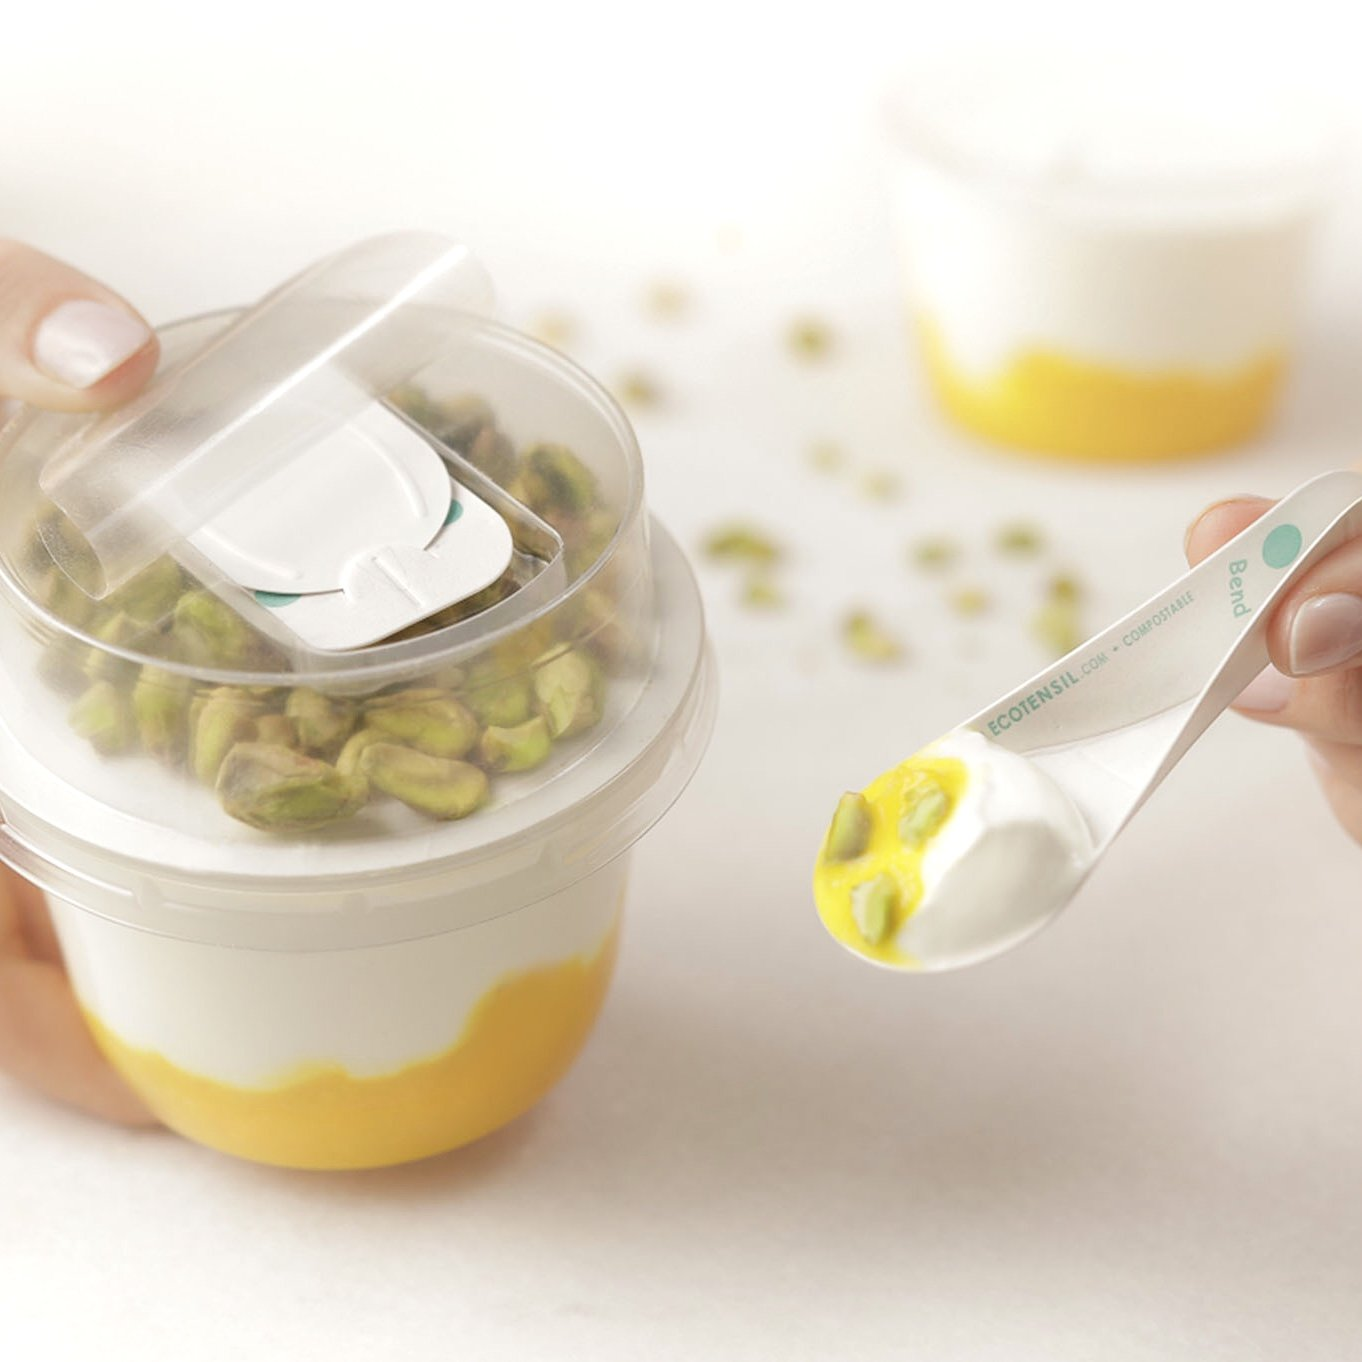 EcoTensil® launches the new AquaDot© range of plastic-free paperboard cutlery in the EU ahead of single-use plastic ban